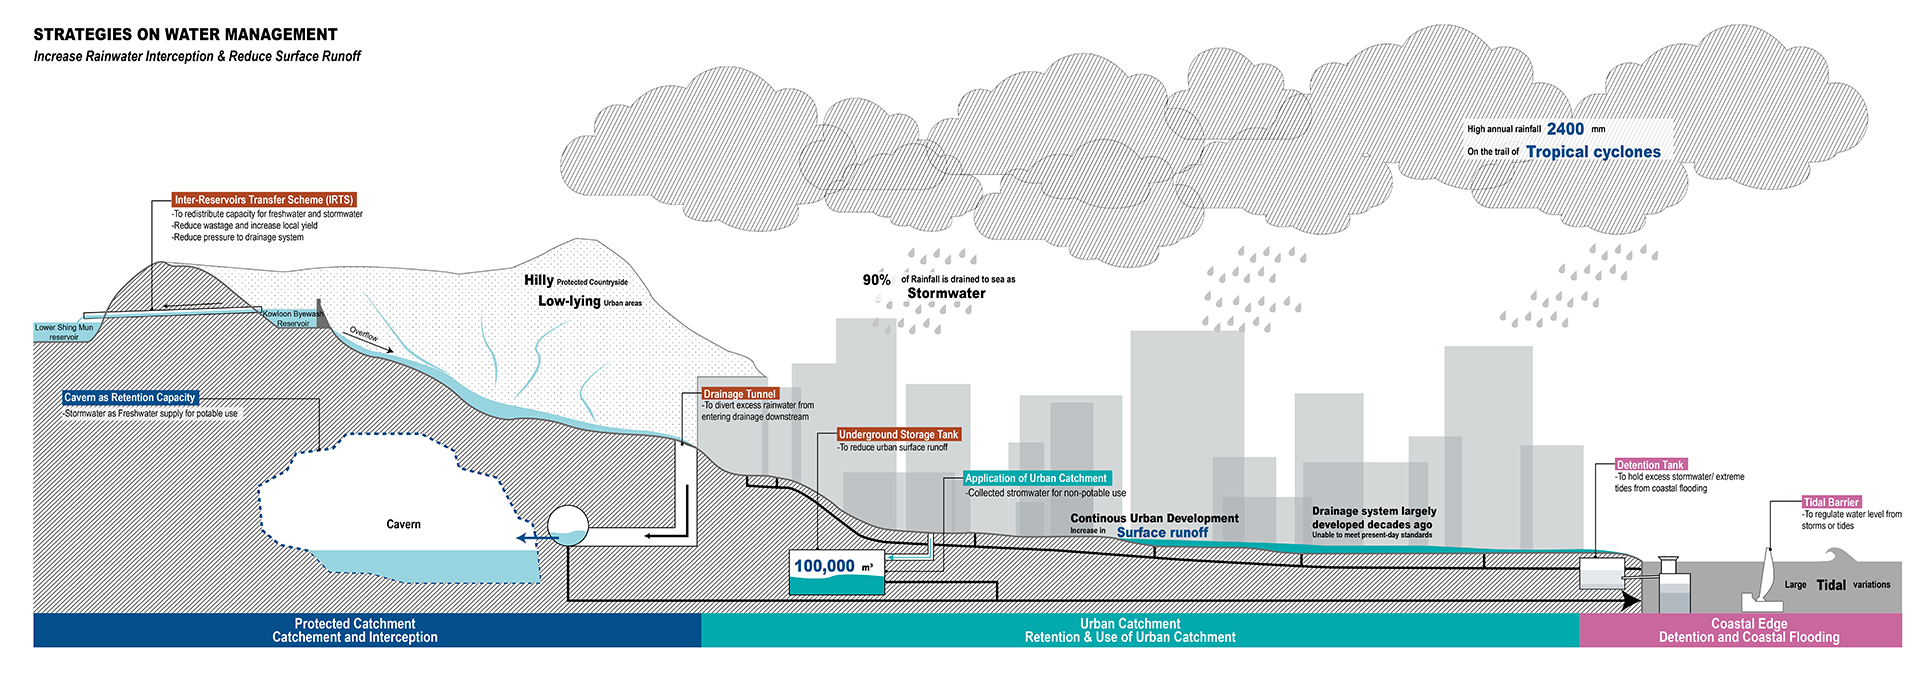 Enlarge Photo: This section shows the connection between urban development and hillside protected catchment; and demonstrates how the proposal makes use of caverns, storage tanks for urban catchment, and coastal strategies. By CHAN Ka Yu Phoebe.